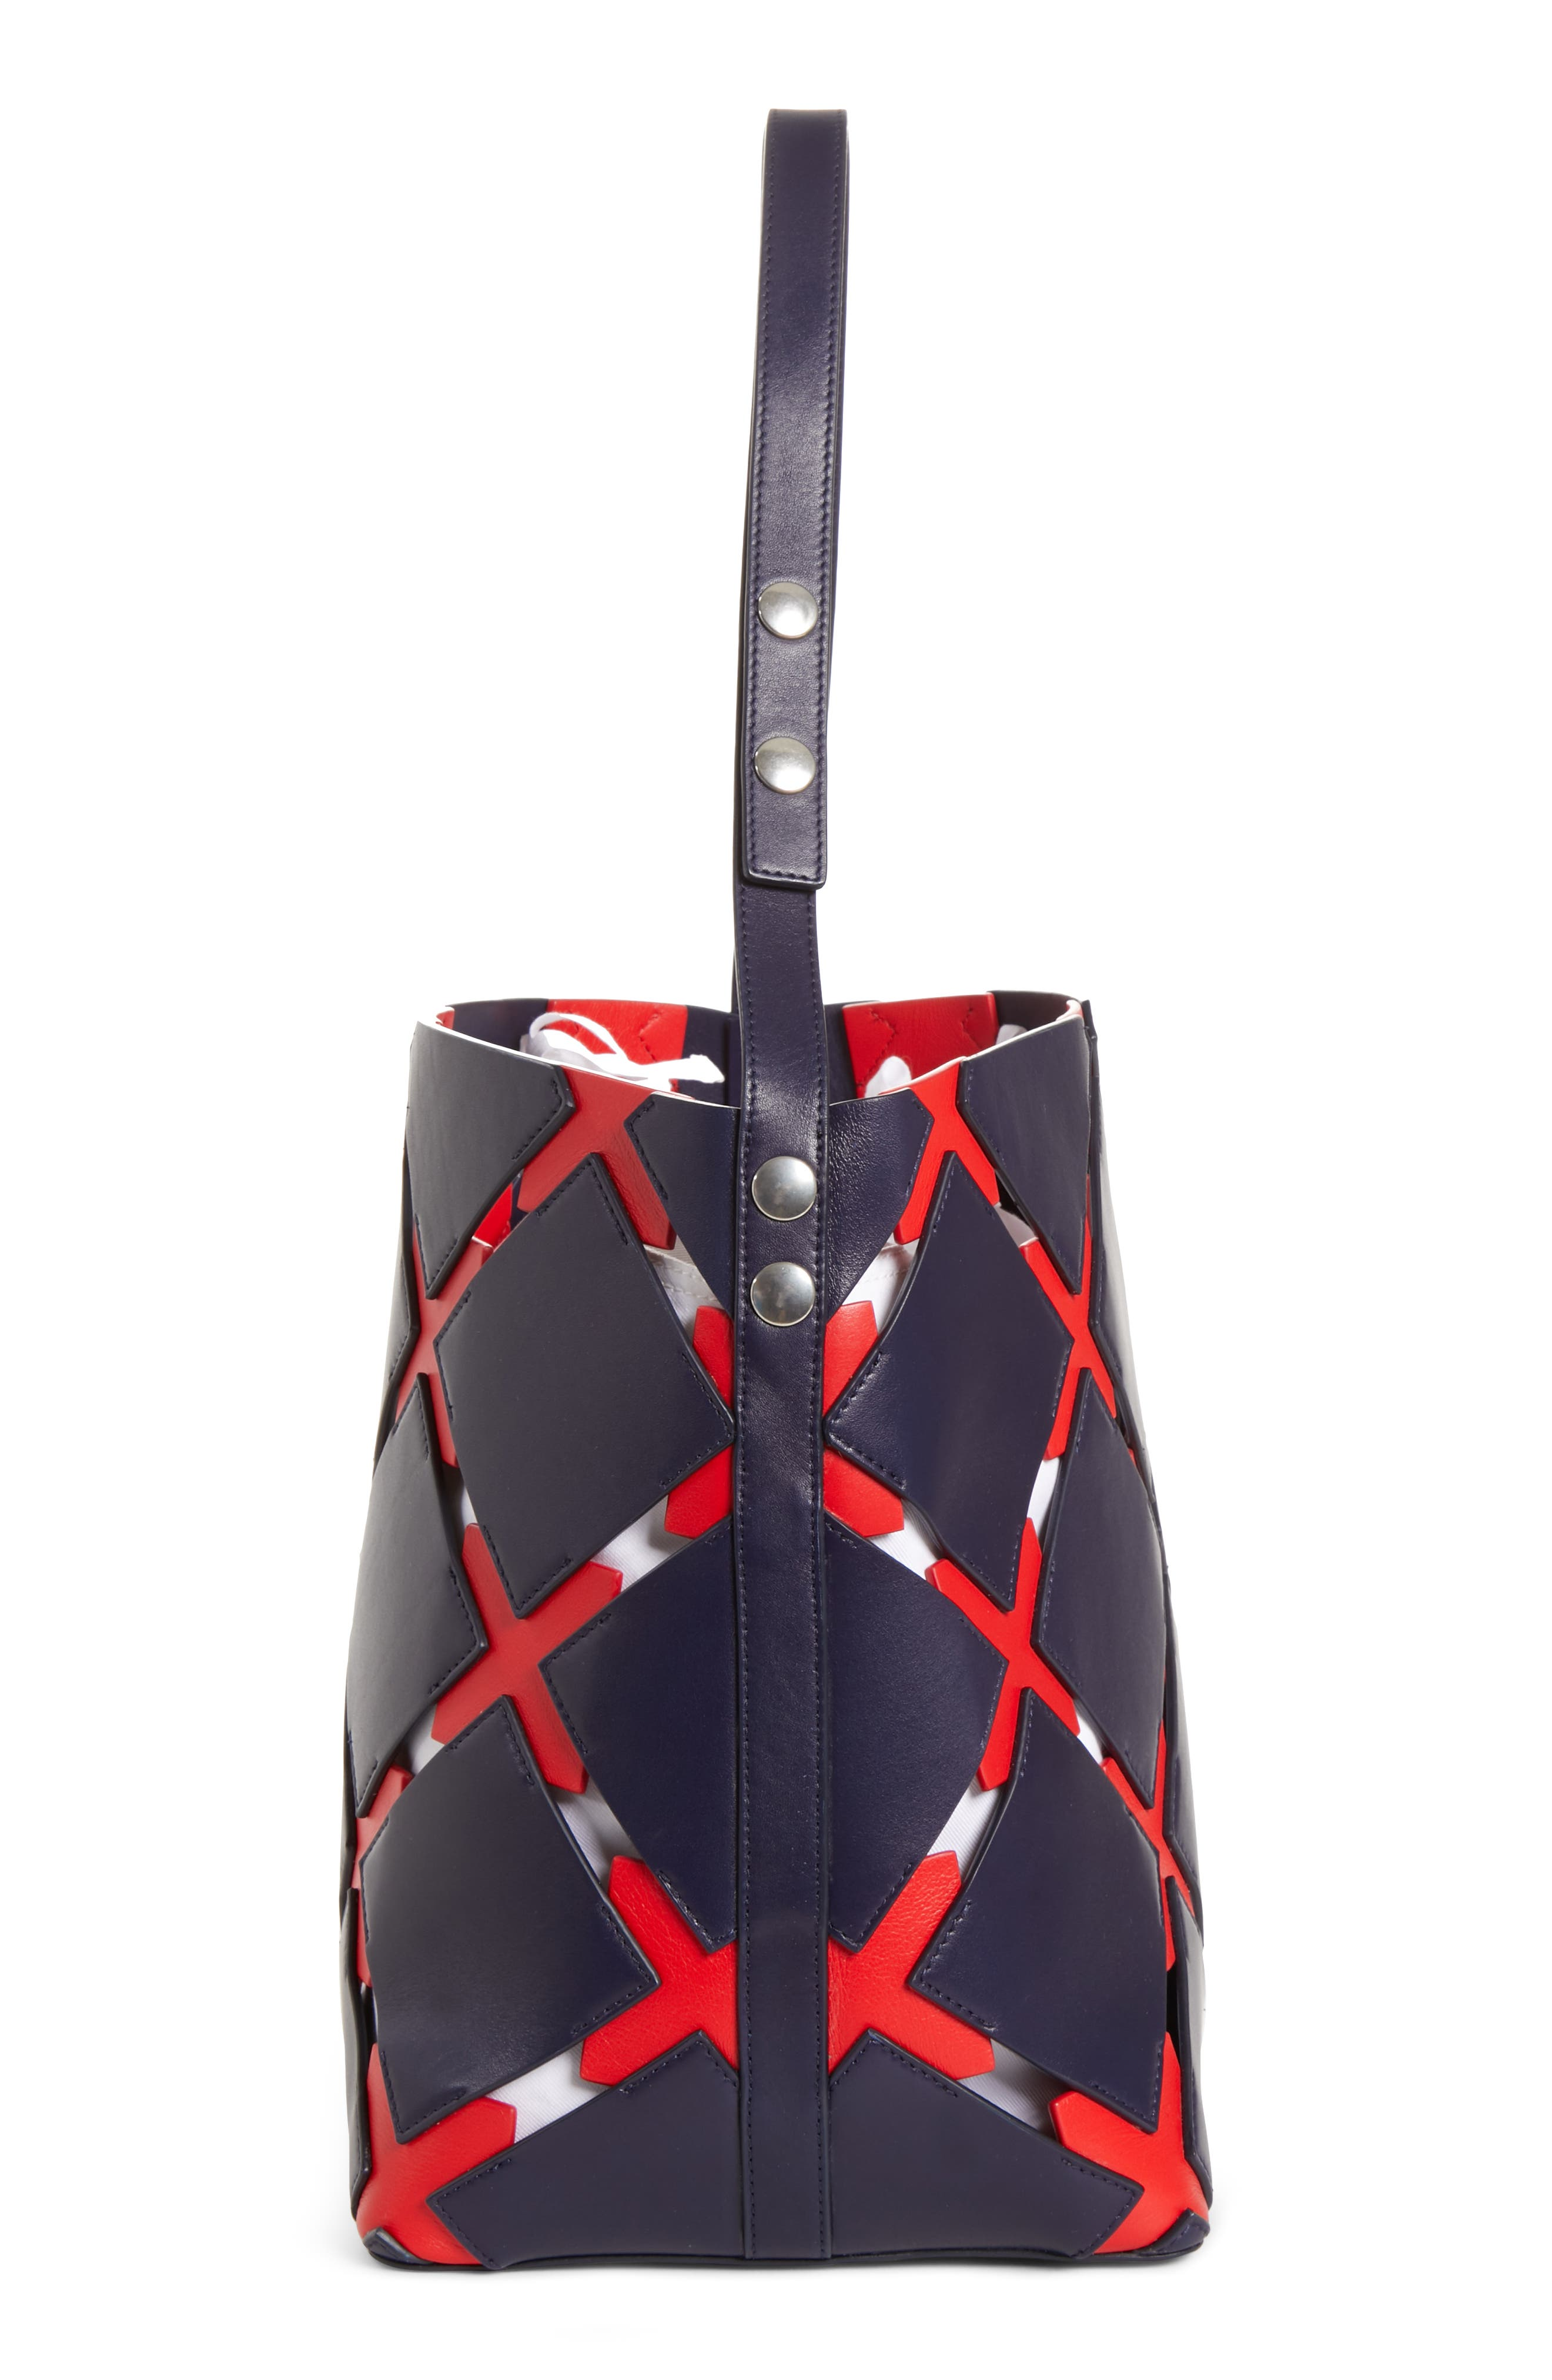 Patchwork Quilt Leather Bucket Bag,                             Alternate thumbnail 5, color,                             NAVY/ RED